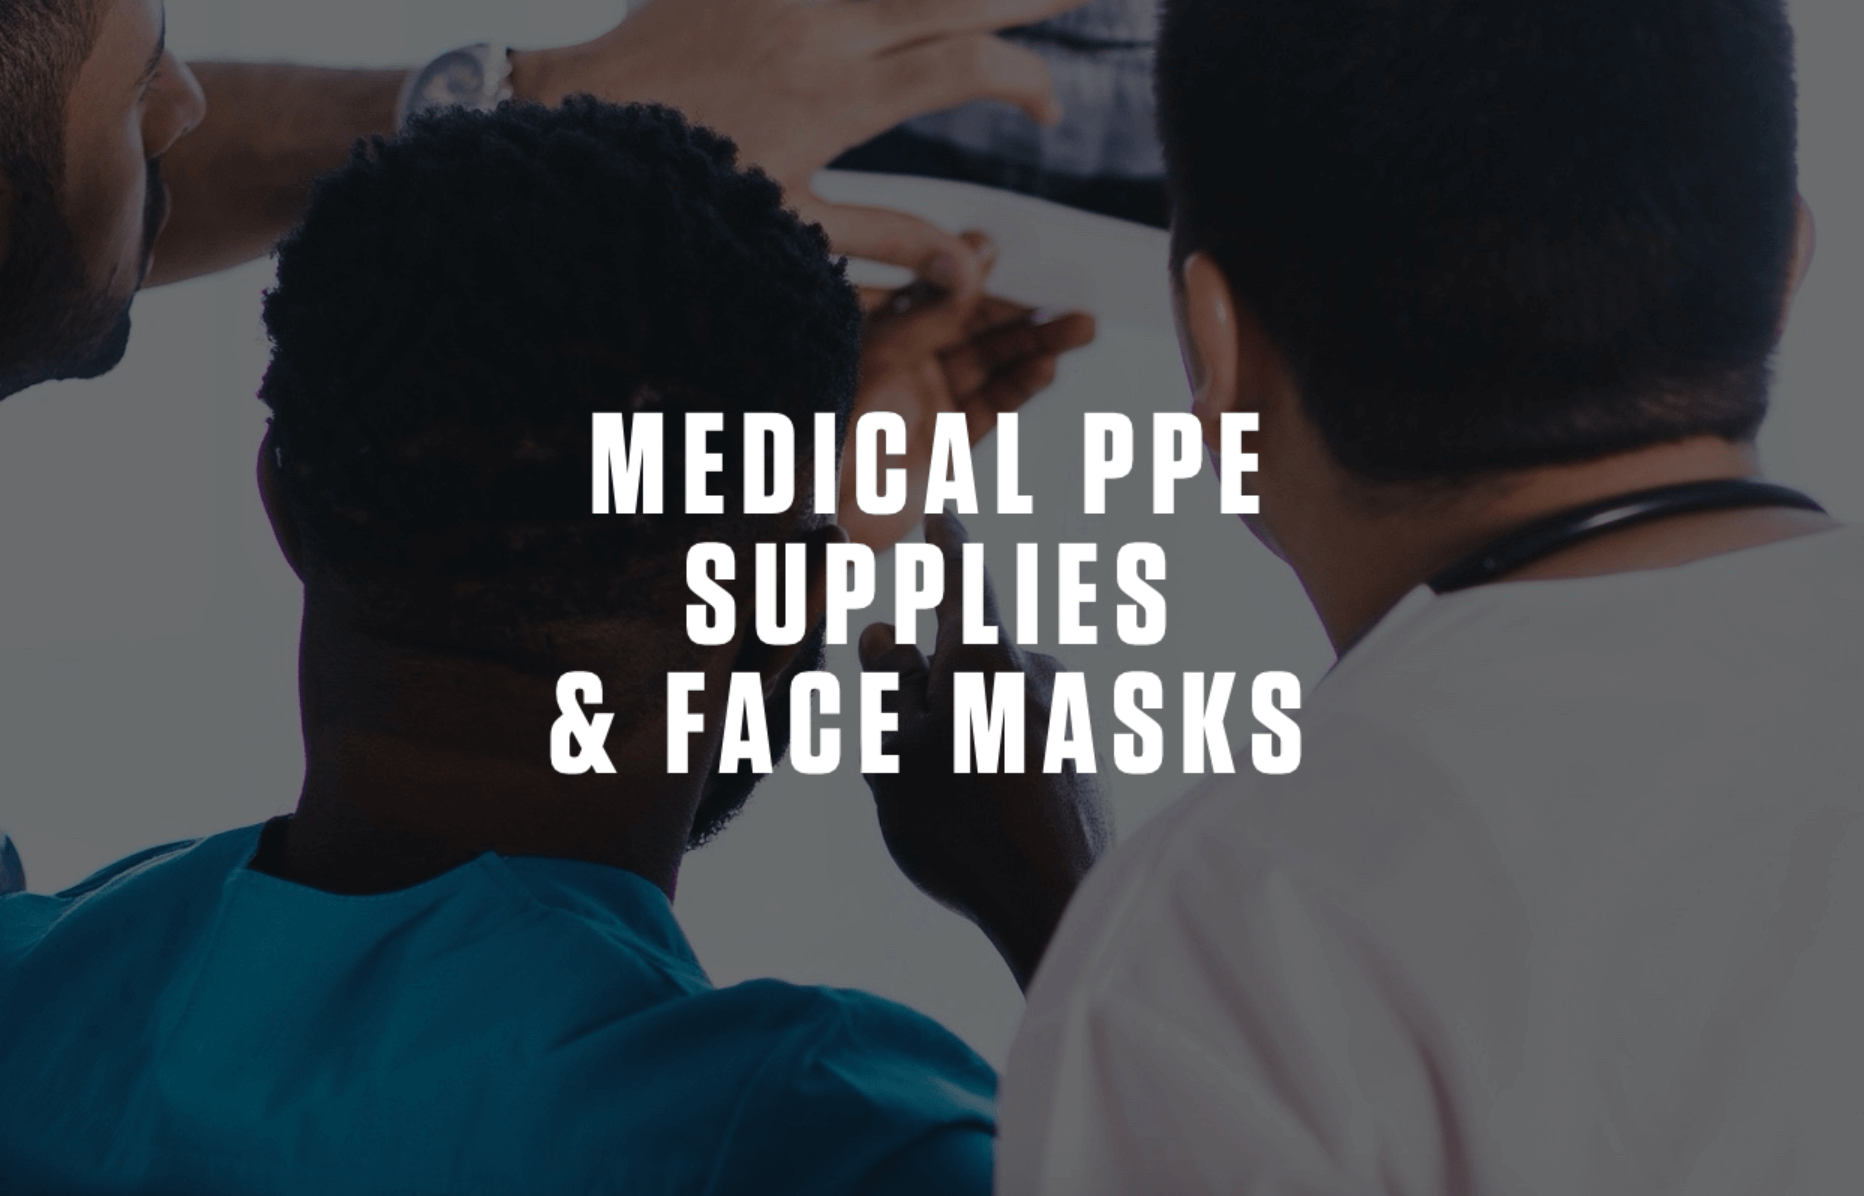 Medical PPE Supplies & Face Masks